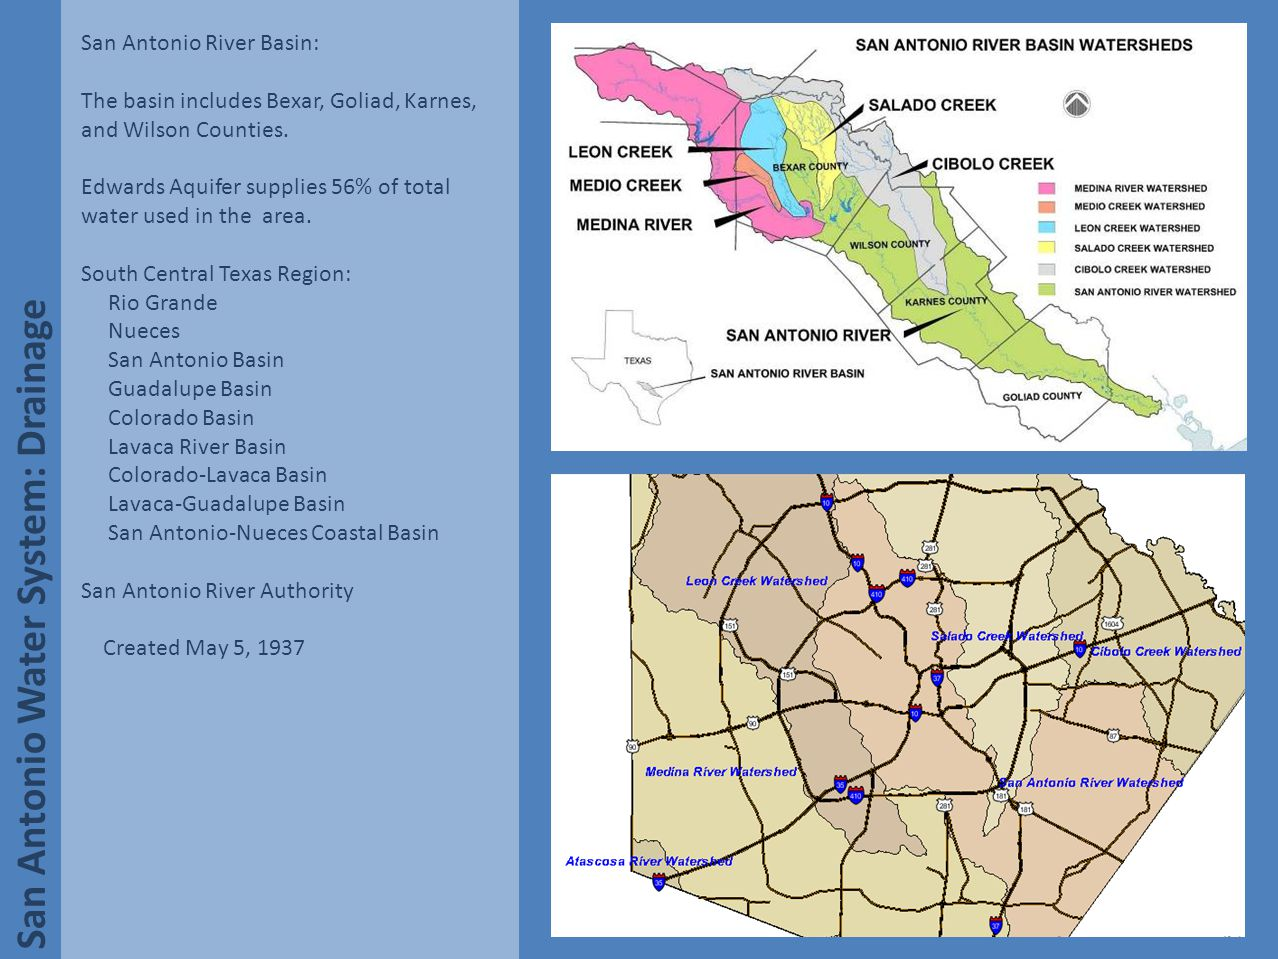 San Antonio Water System: Major Aquifers The San Antonio River Basin: San Antonio receives much of its water from underground sources and above ground aquifers.